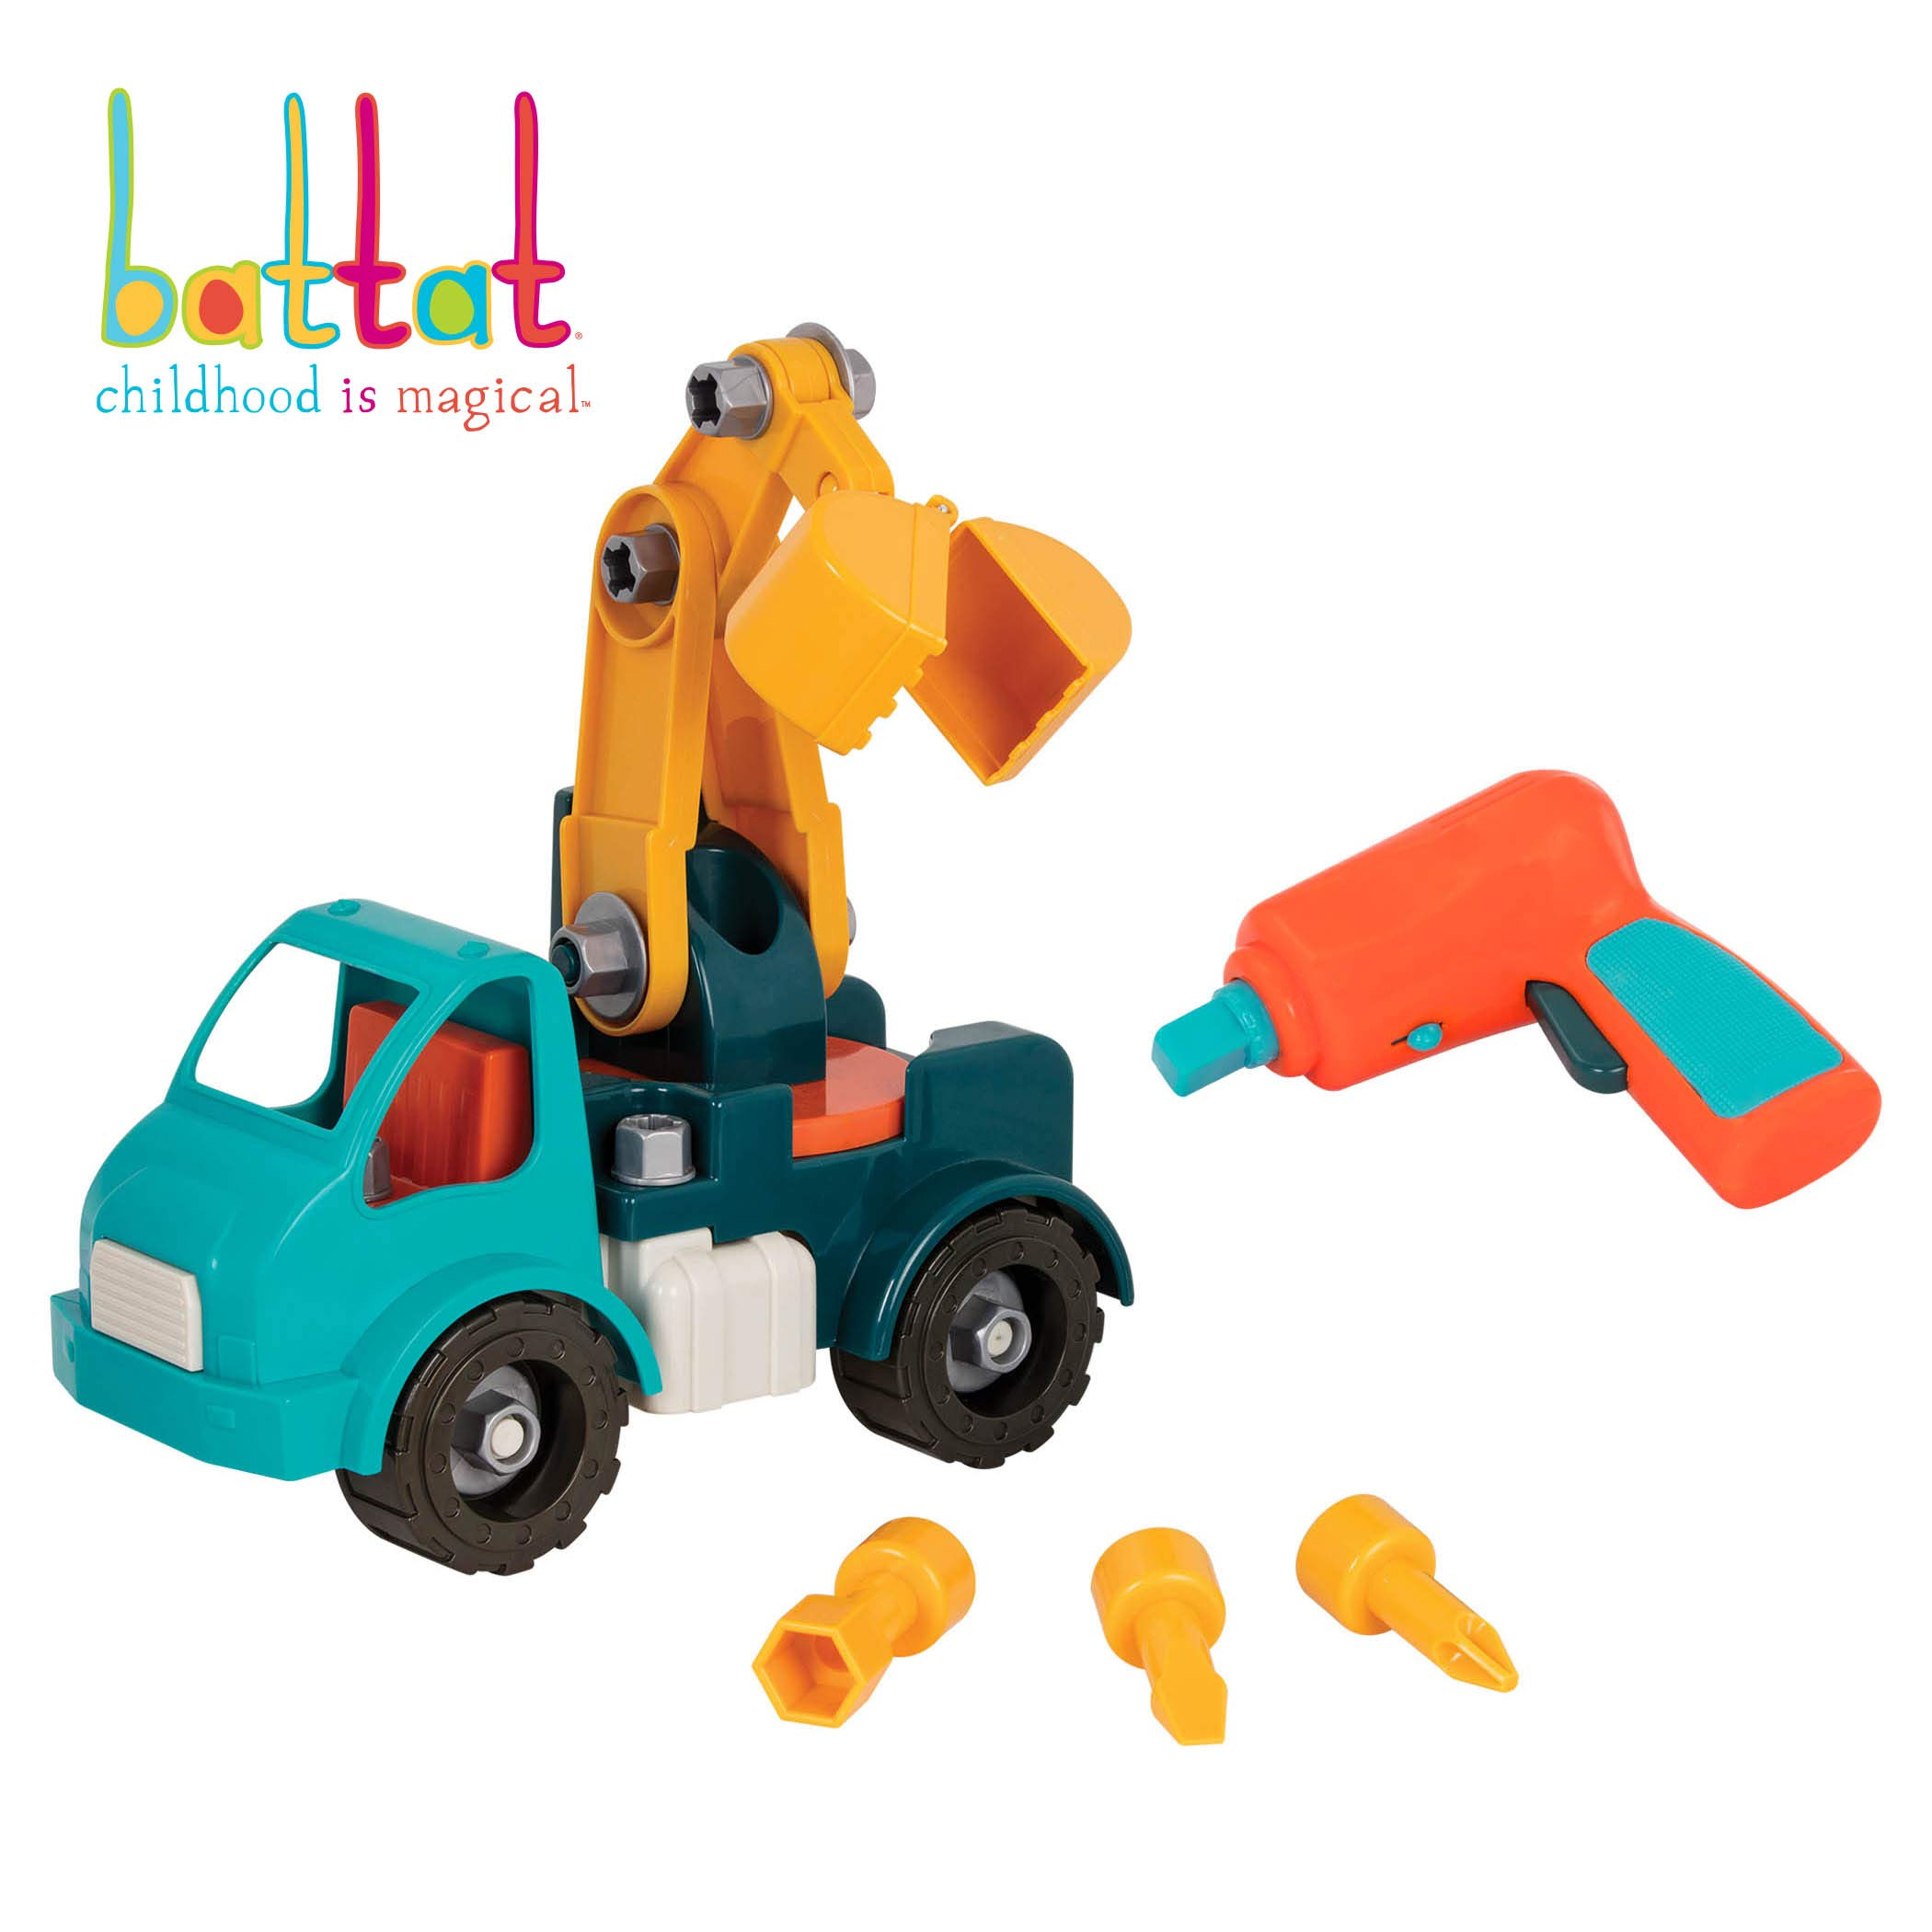 Battat - Take-Apart Crane Truck - Toy vehicle assembly playset with functional battery-powered drill - Early childhood developmental skills toy for kids aged 3 and up